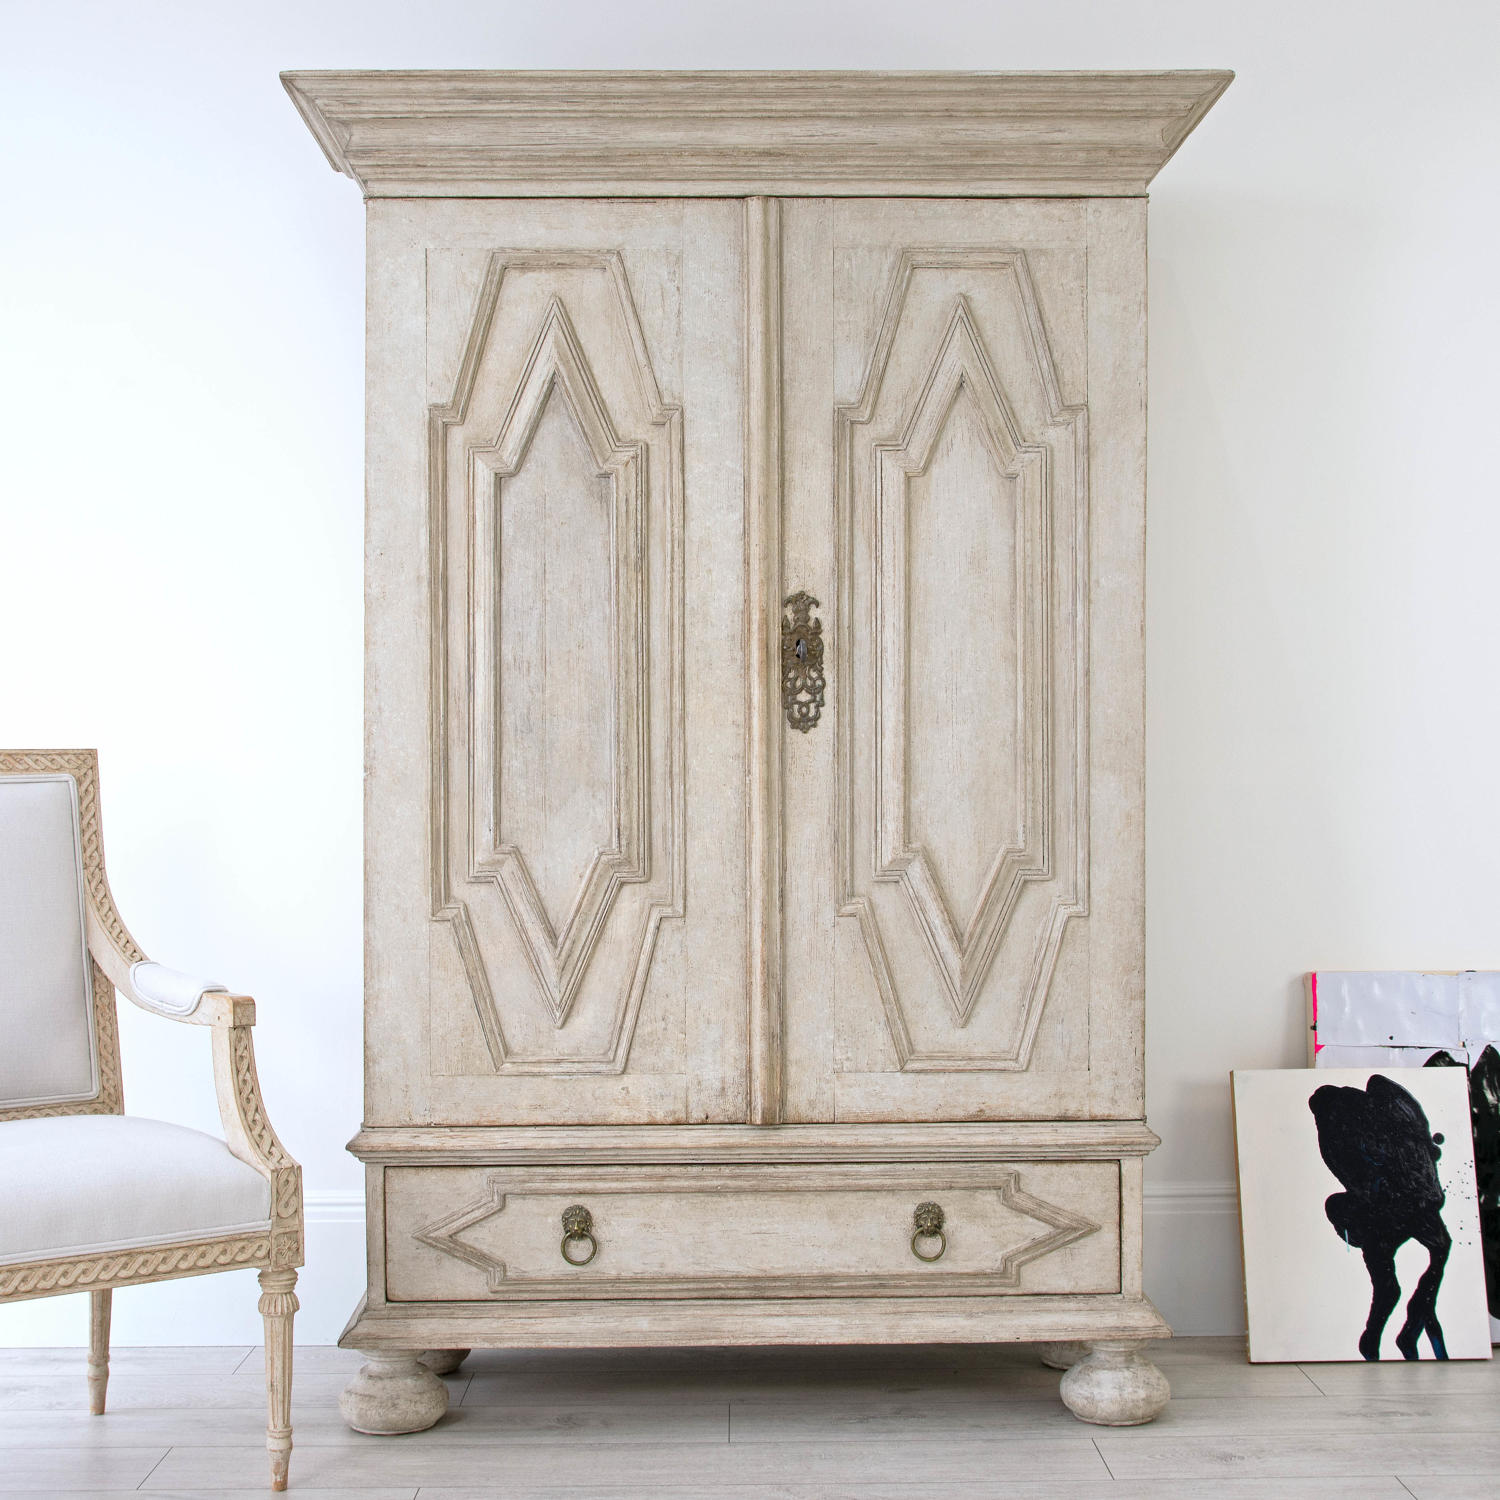 BAROQUE PERIOD CABINET